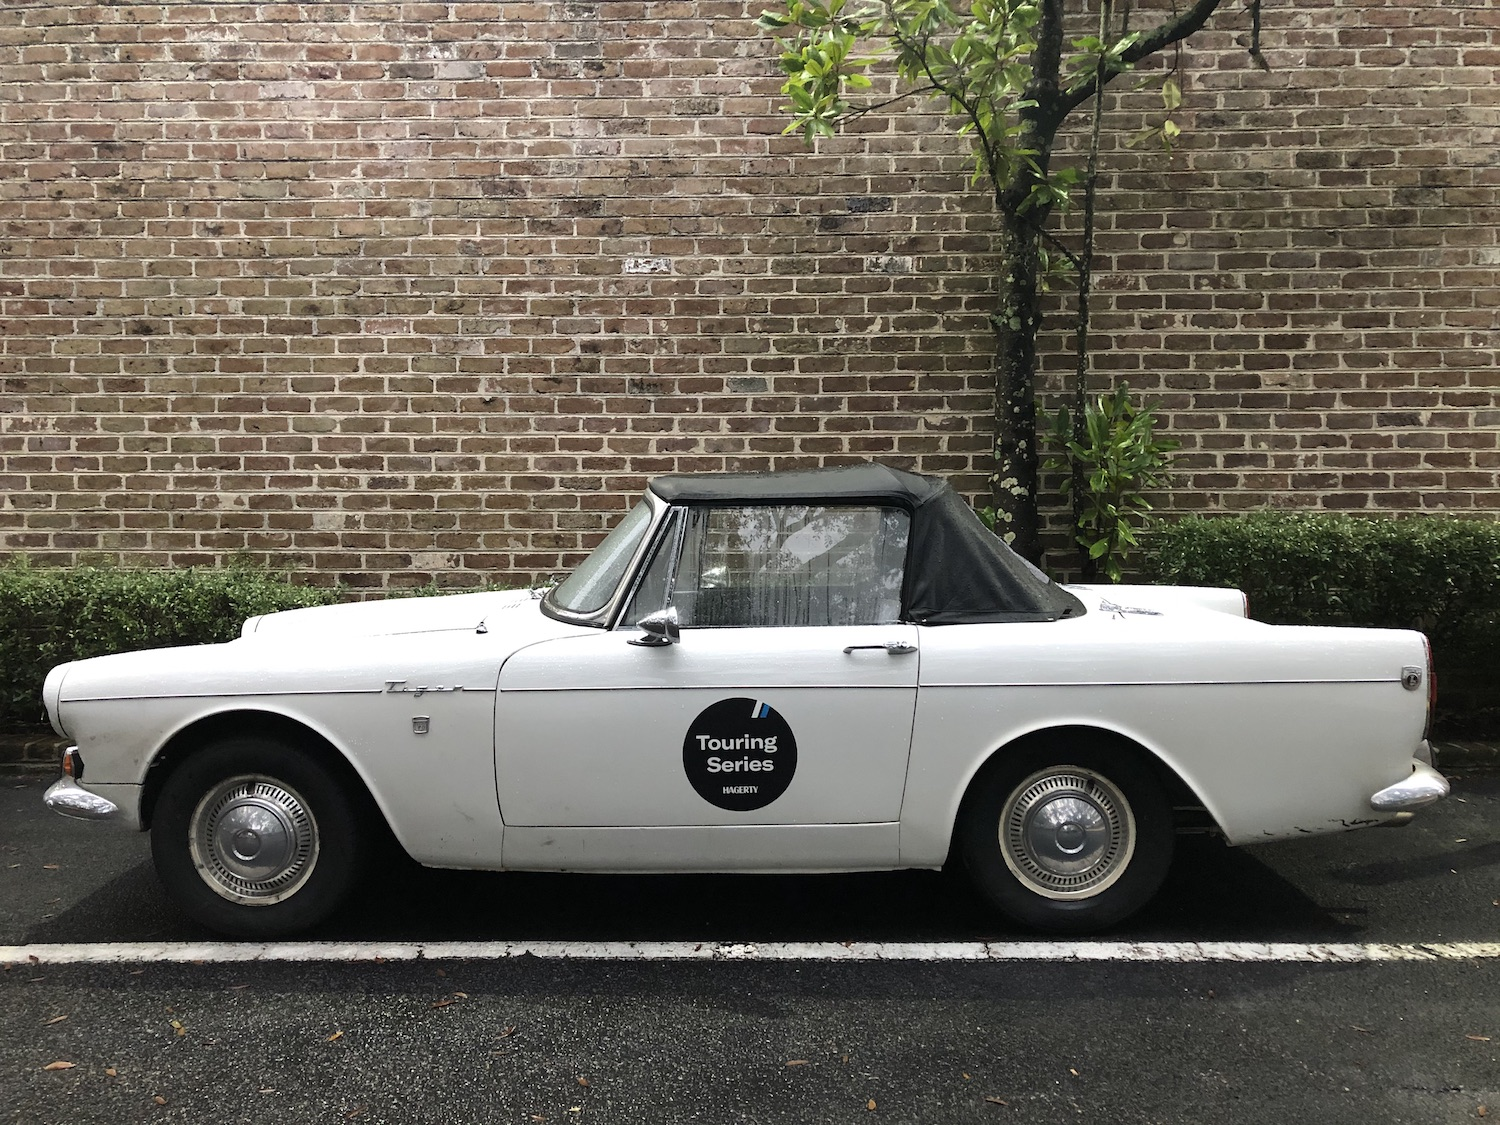 white sunbeam tiger side-view touring series car